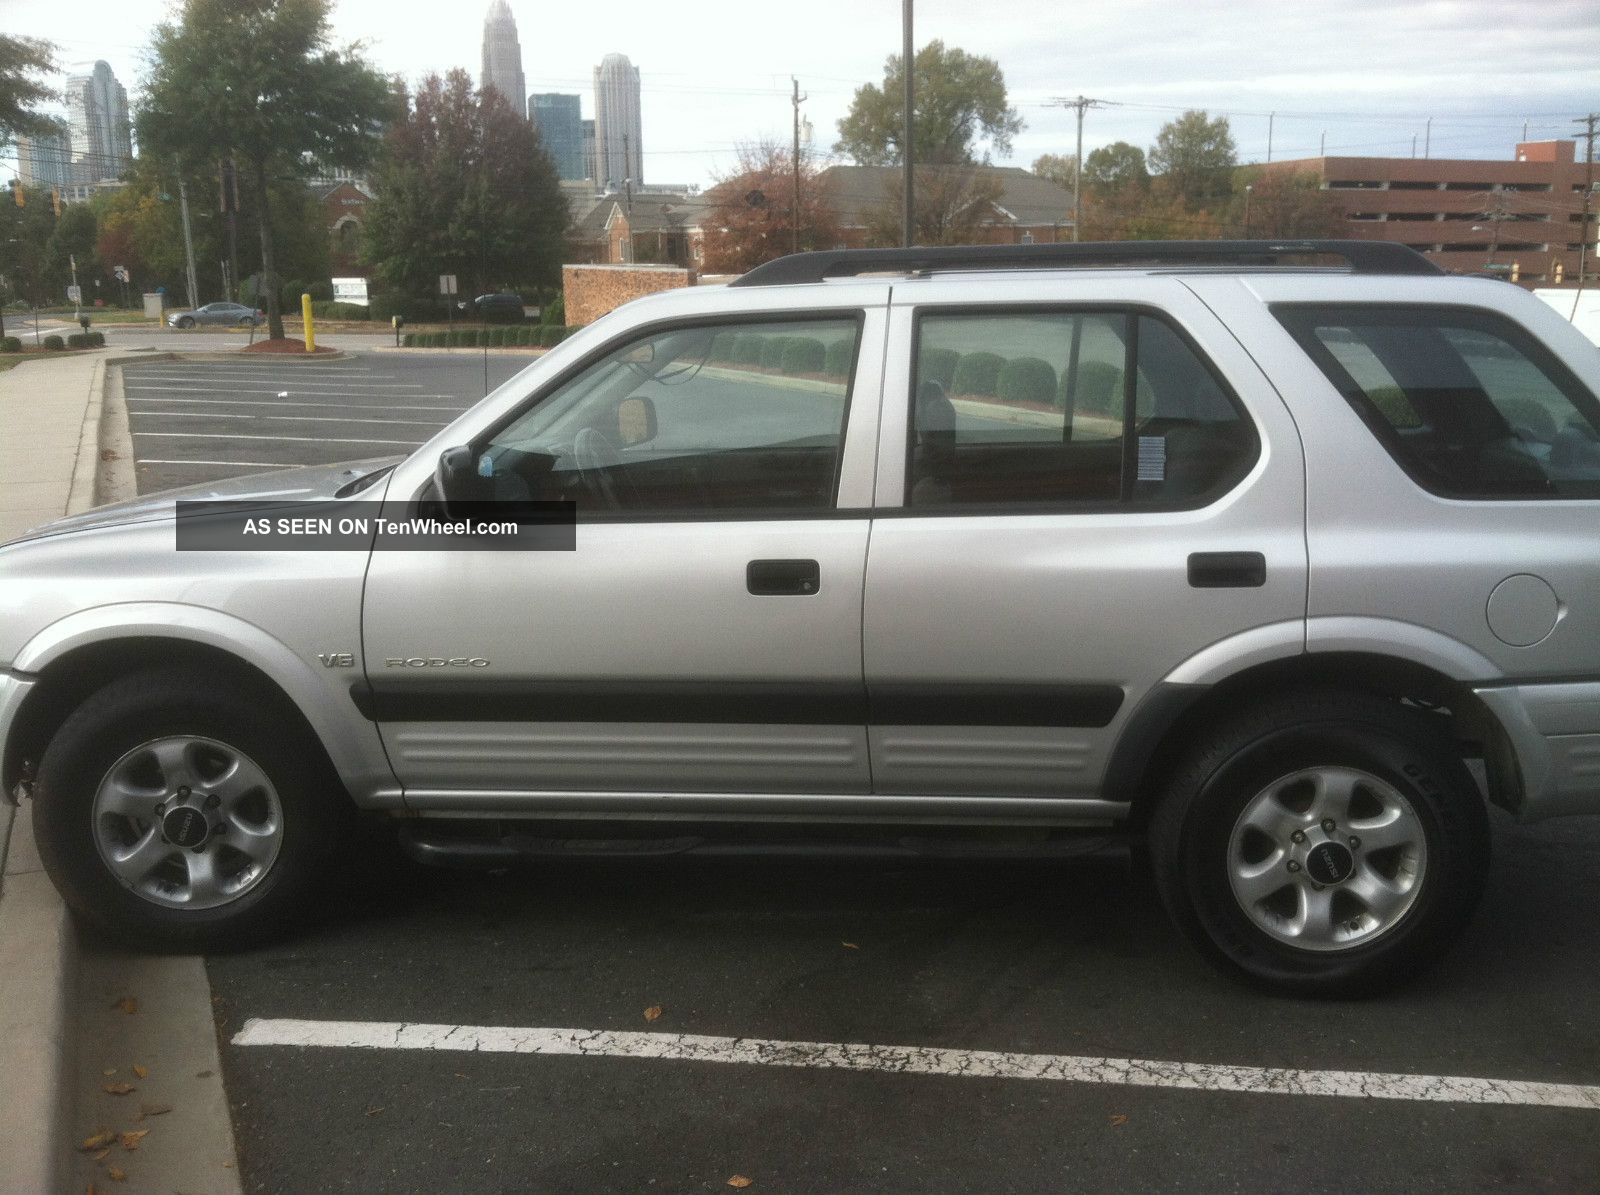 1998 isuzu rodeo stereo wiring diagram 277 volt lighting honda crv cd player new car release date and review 2018